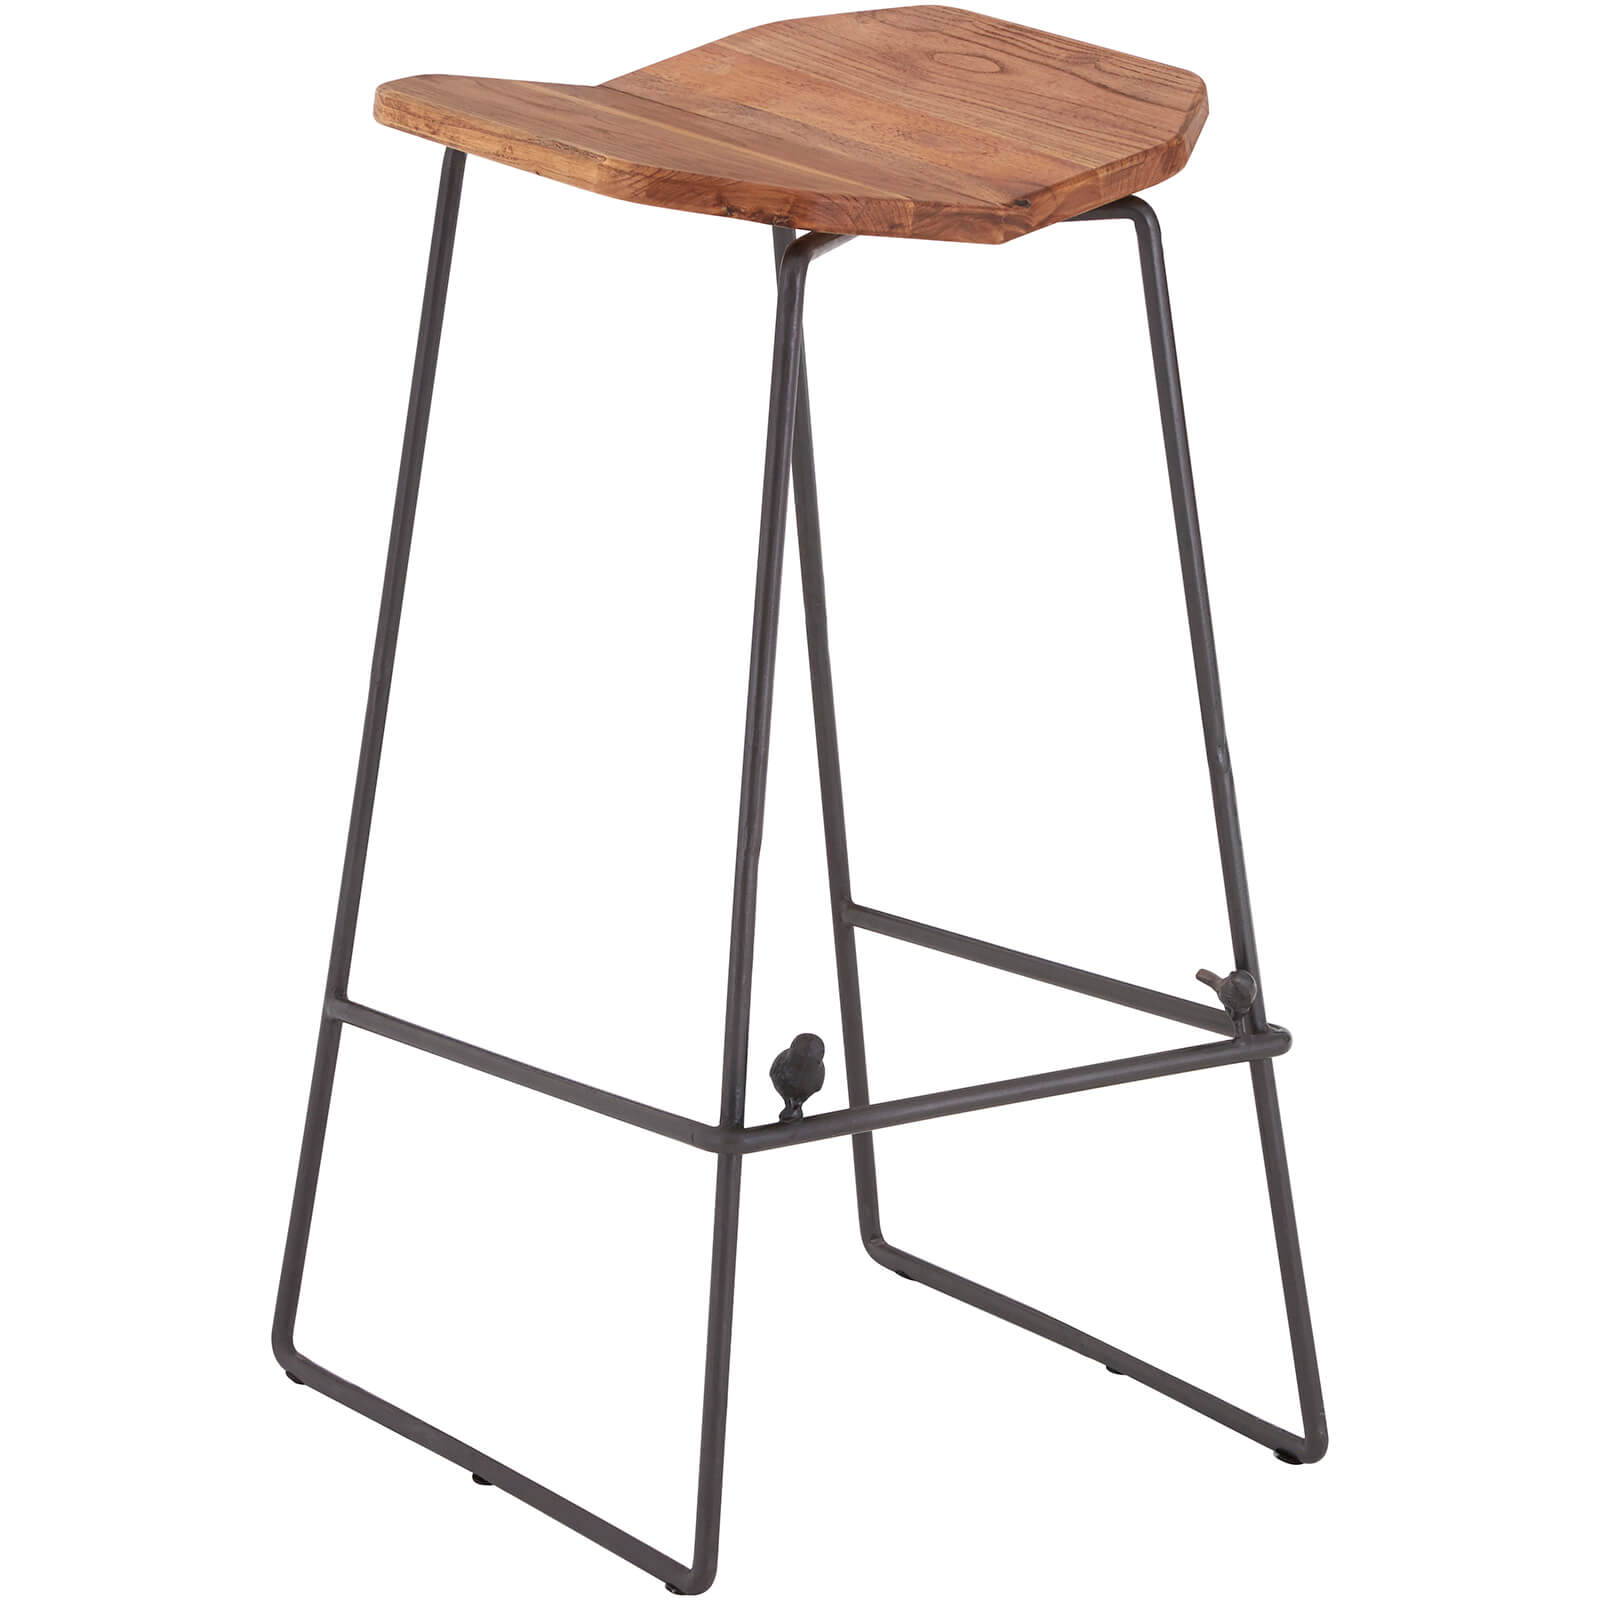 New Foundry Square Bar Stool - Elm Wood/Metal